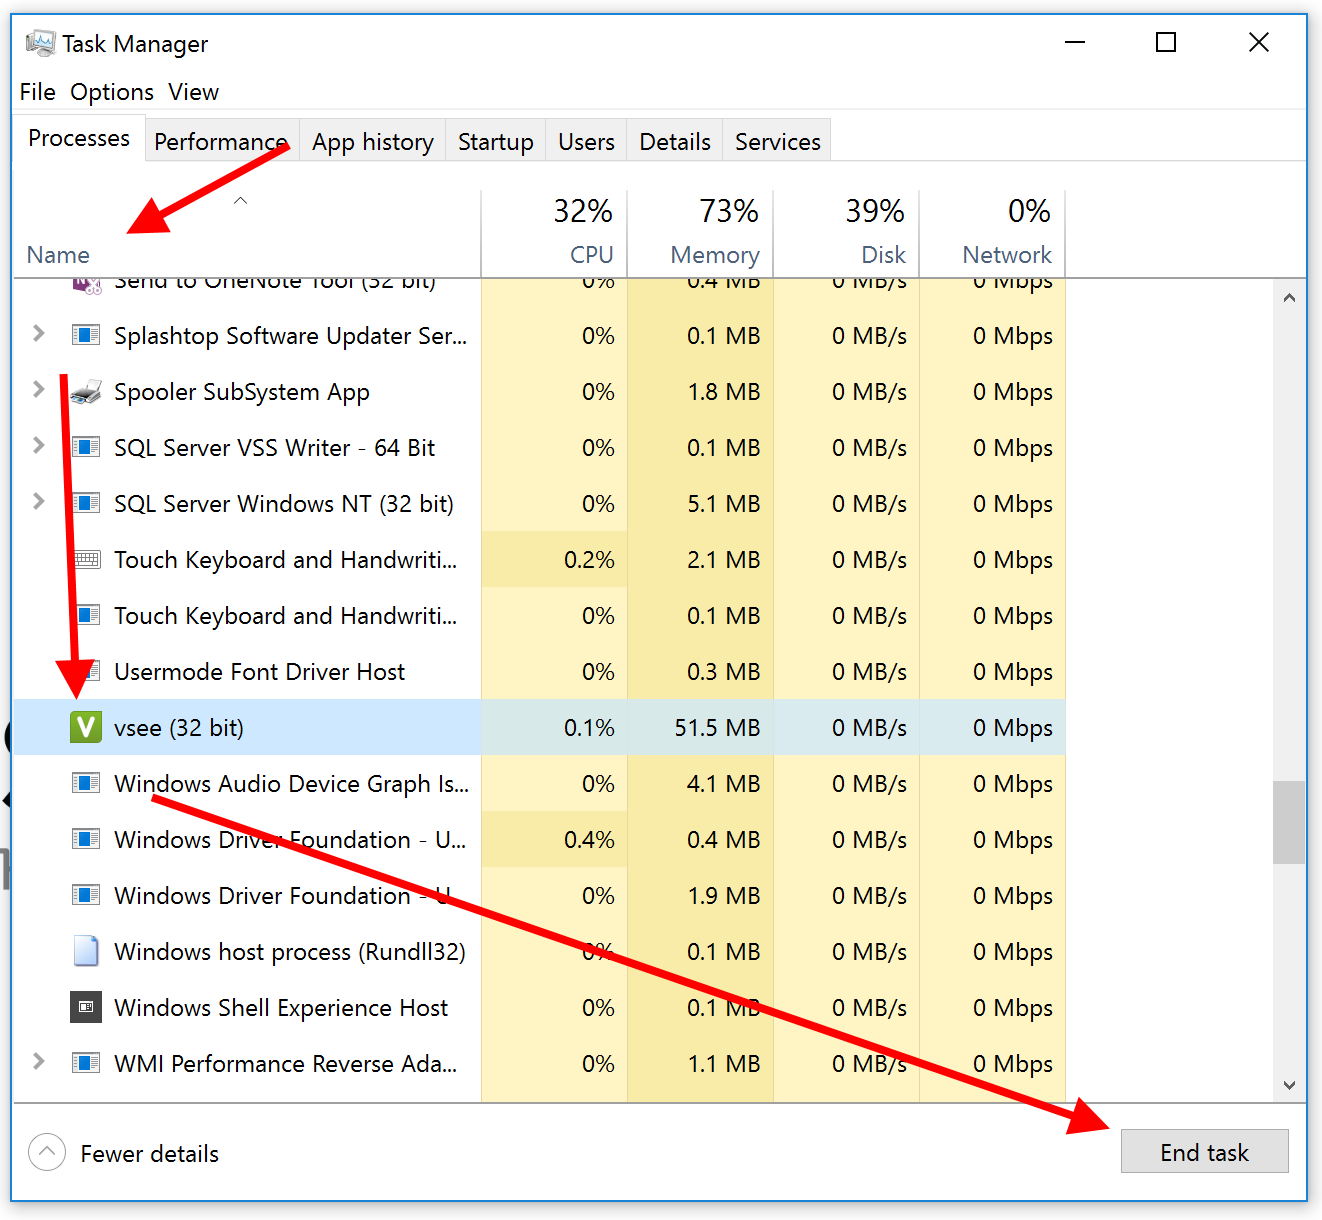 Screencap showing Task Manager